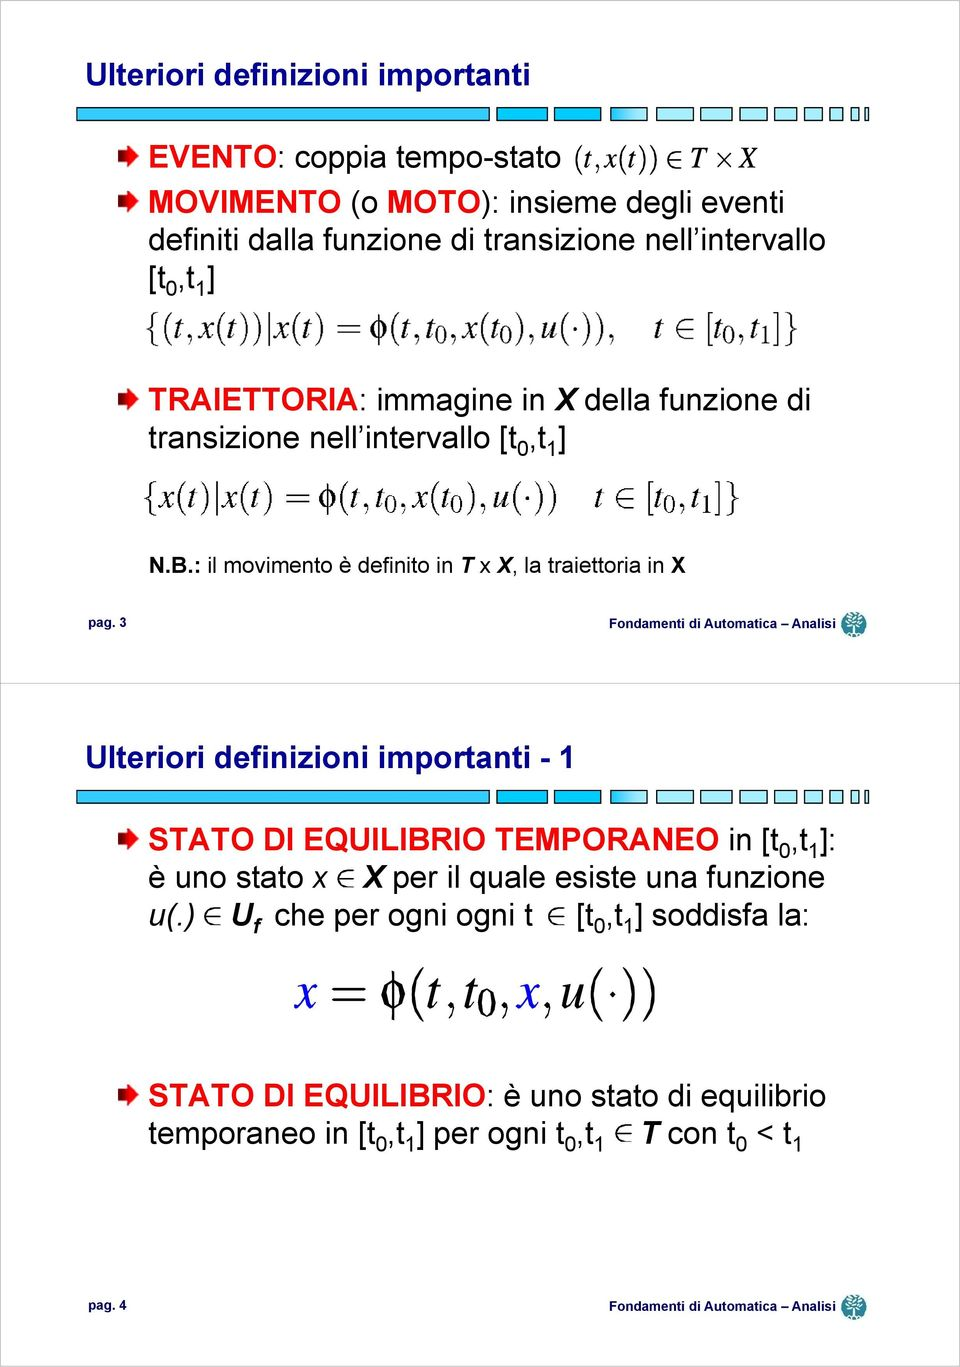 : il movimento è definito in T x X, la traiettoria in X pag.